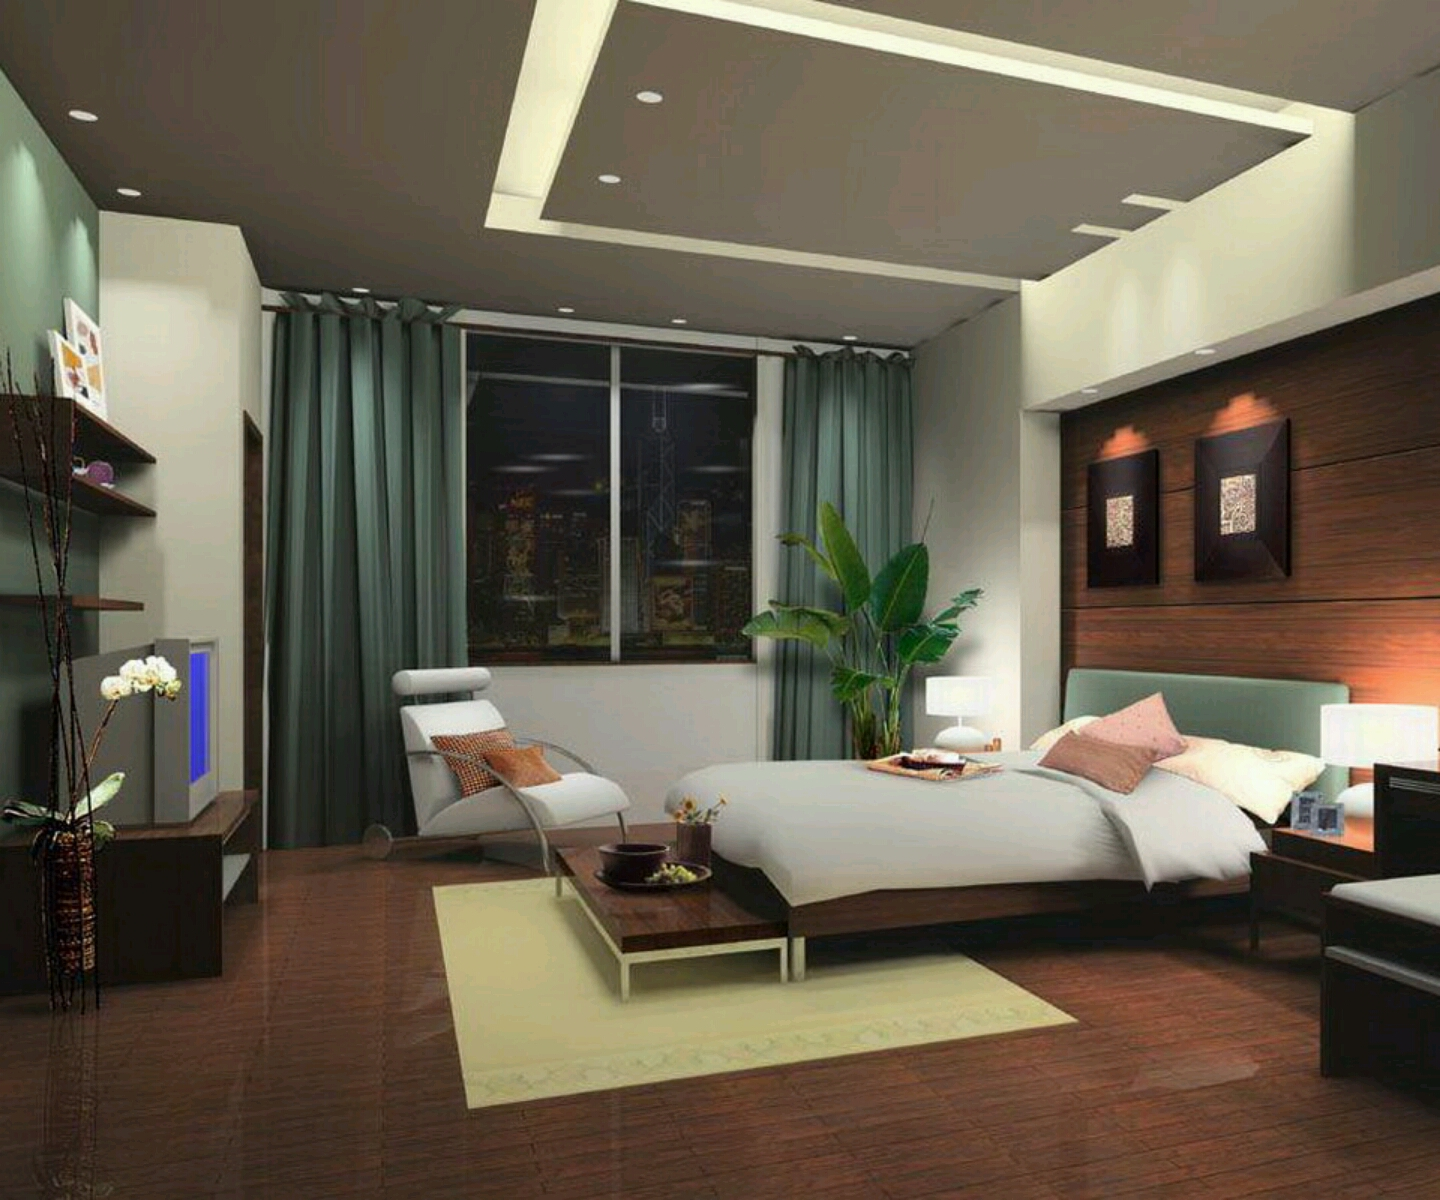 New home designs latest modern bedrooms designs best ideas - House decoration bedroom ...